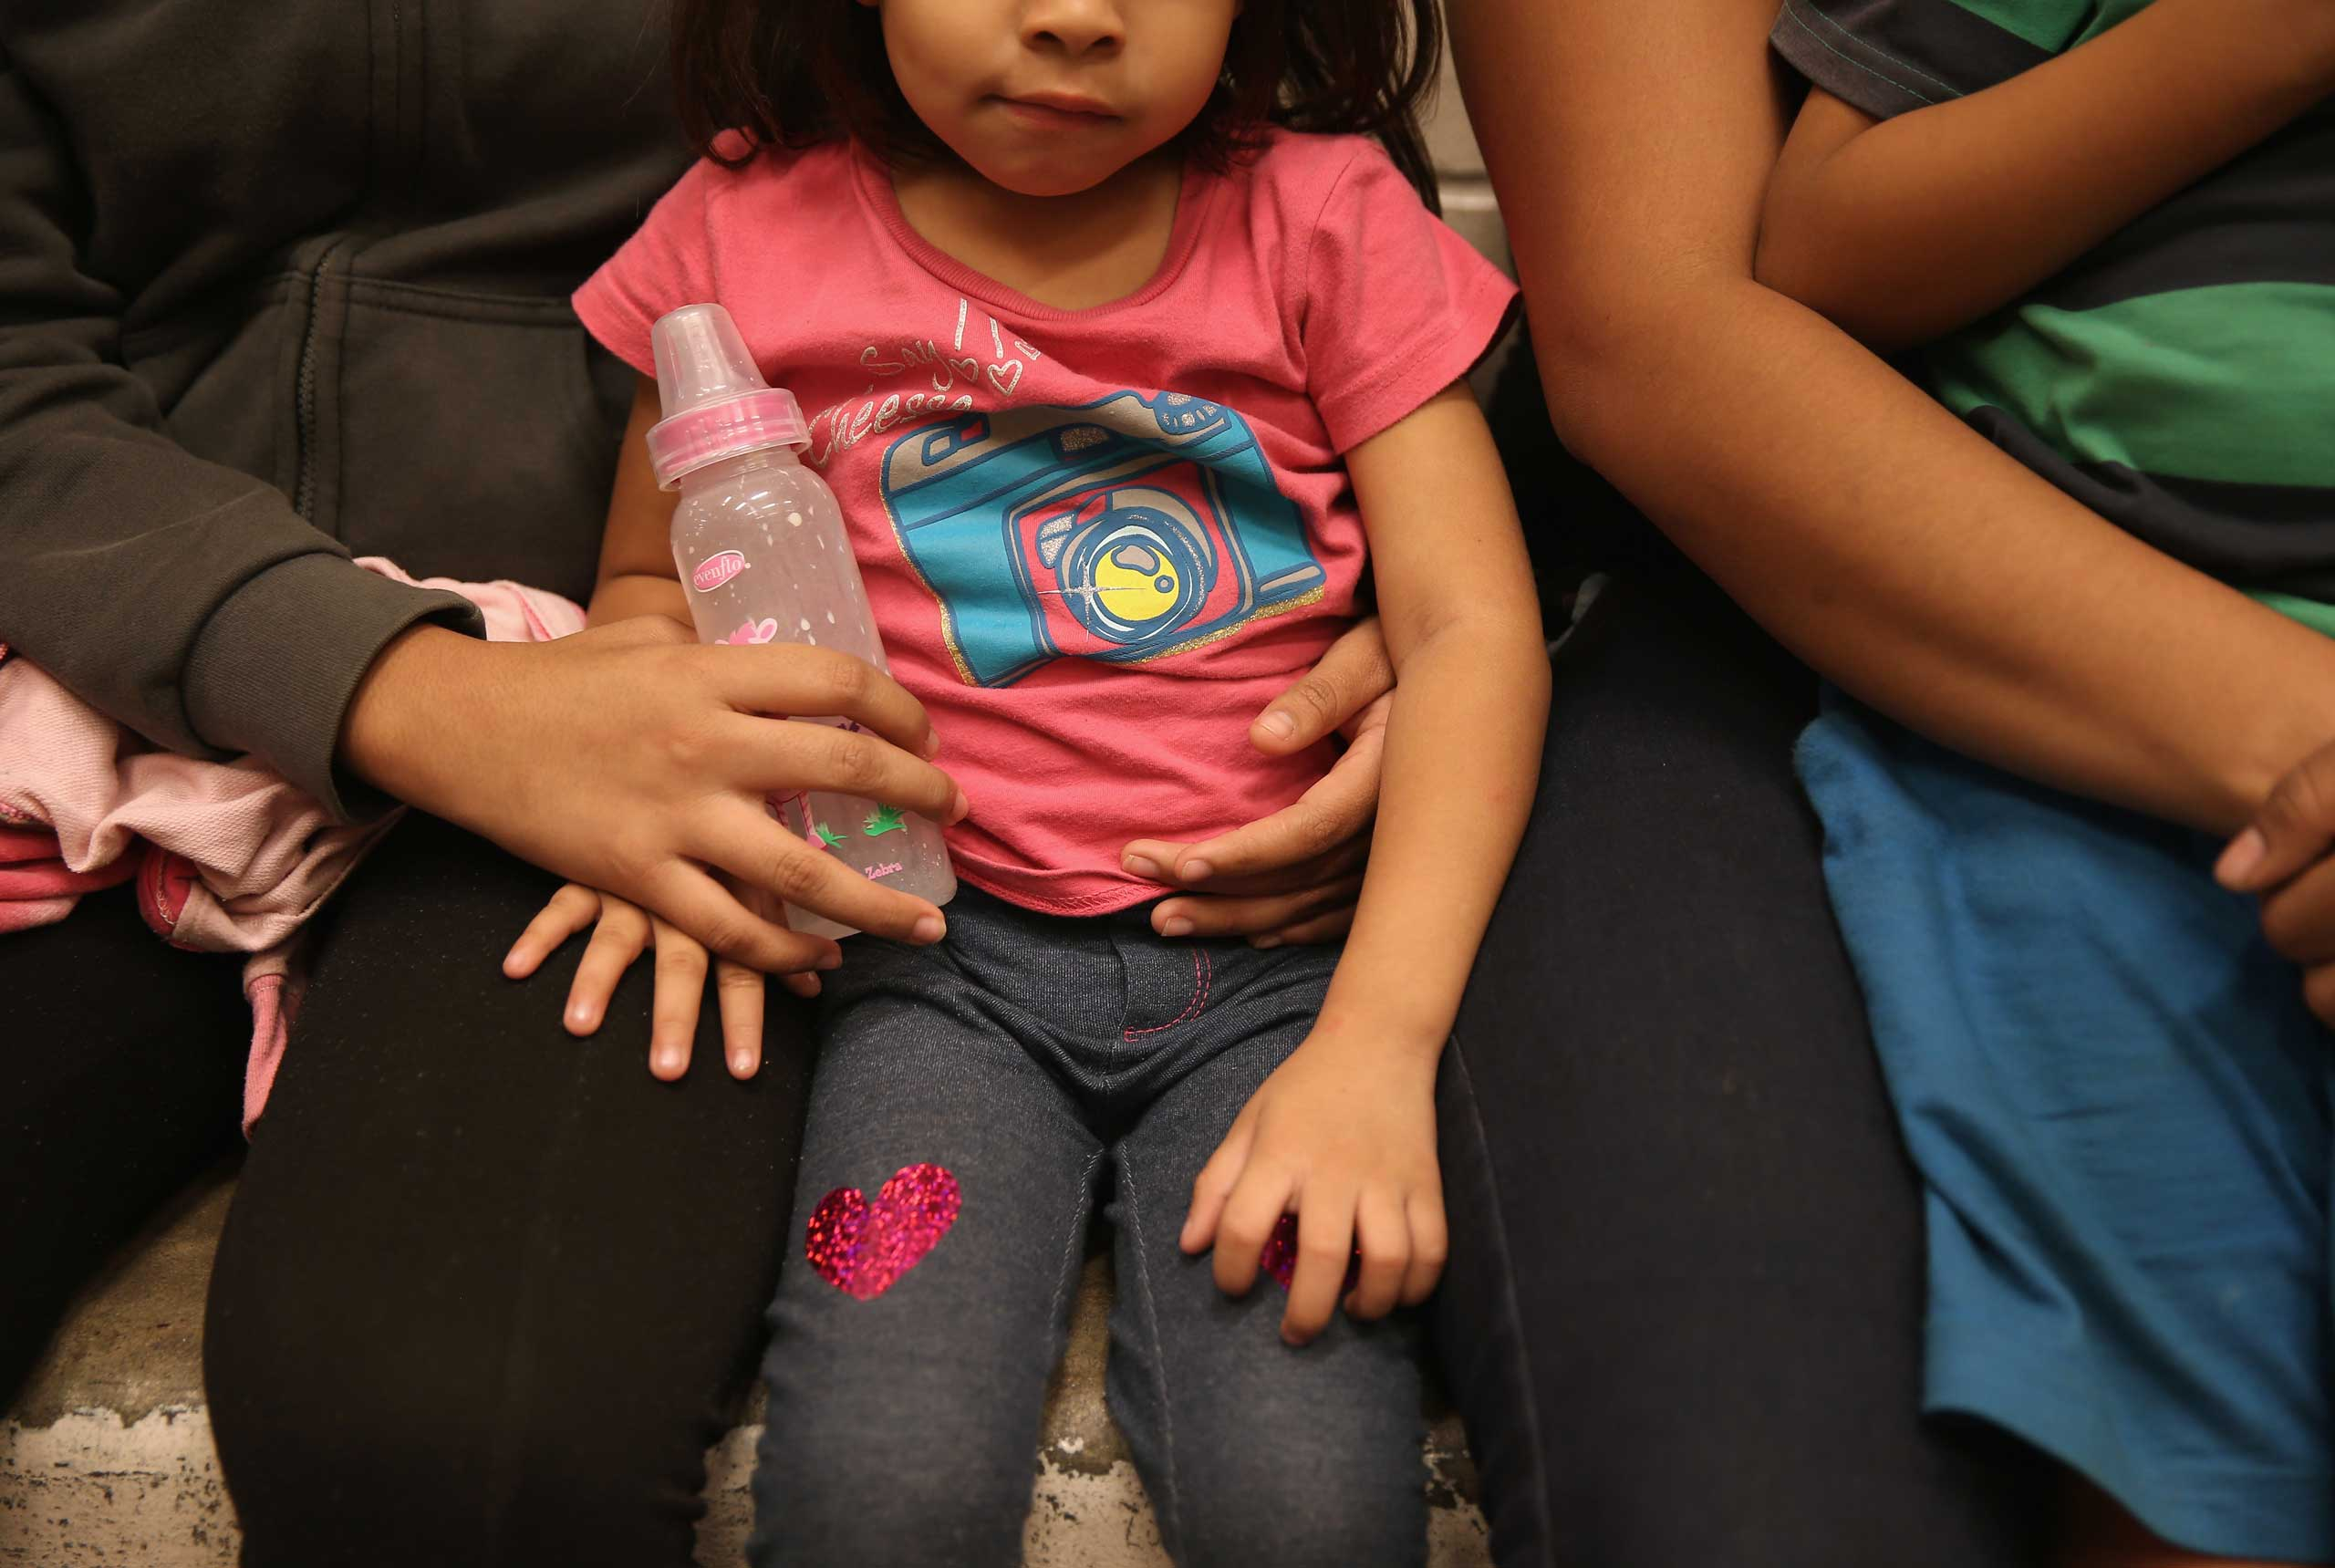 Women and children sit in a holding cell at a U.S. Border Patrol processing center after being detained by agents near the U.S.-Mexico border on Sept. 8, 2014 near McAllen, Texas.